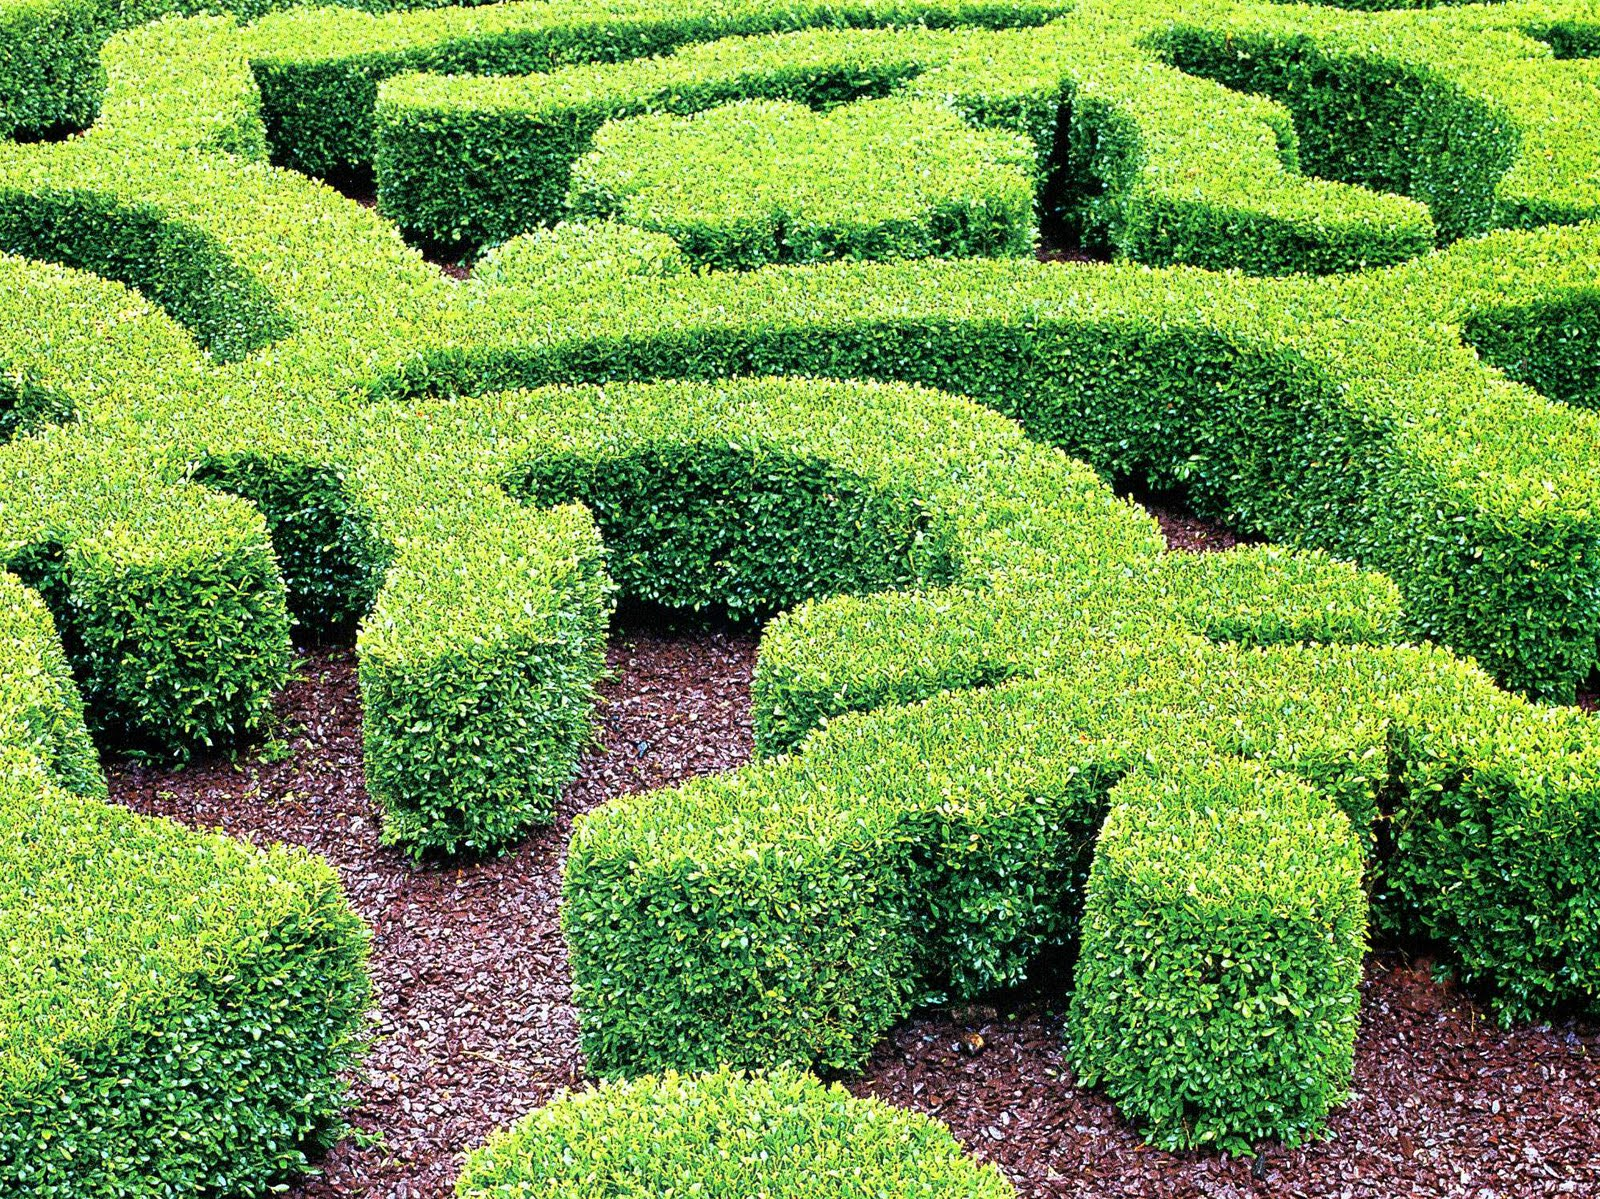 Plant preview parterre garden embroidering with plants for Parterre garden designs